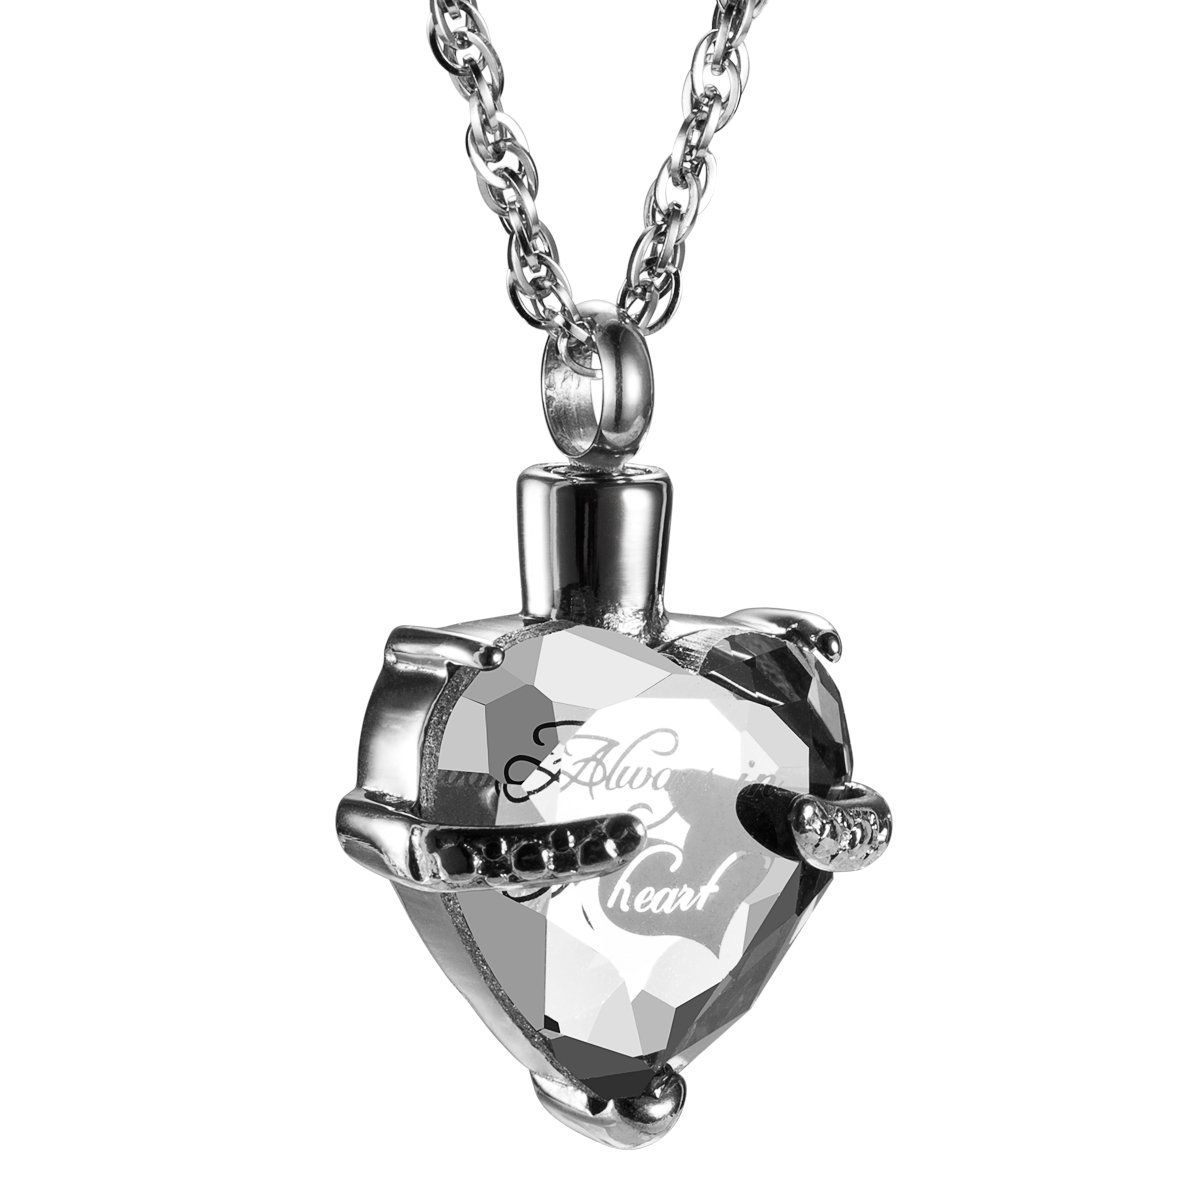 Always in My Heart with Crystal Glass Cremation Jewelry Urn Necklace Memorial-Ashes Holder Keepsake by AMIST (April)